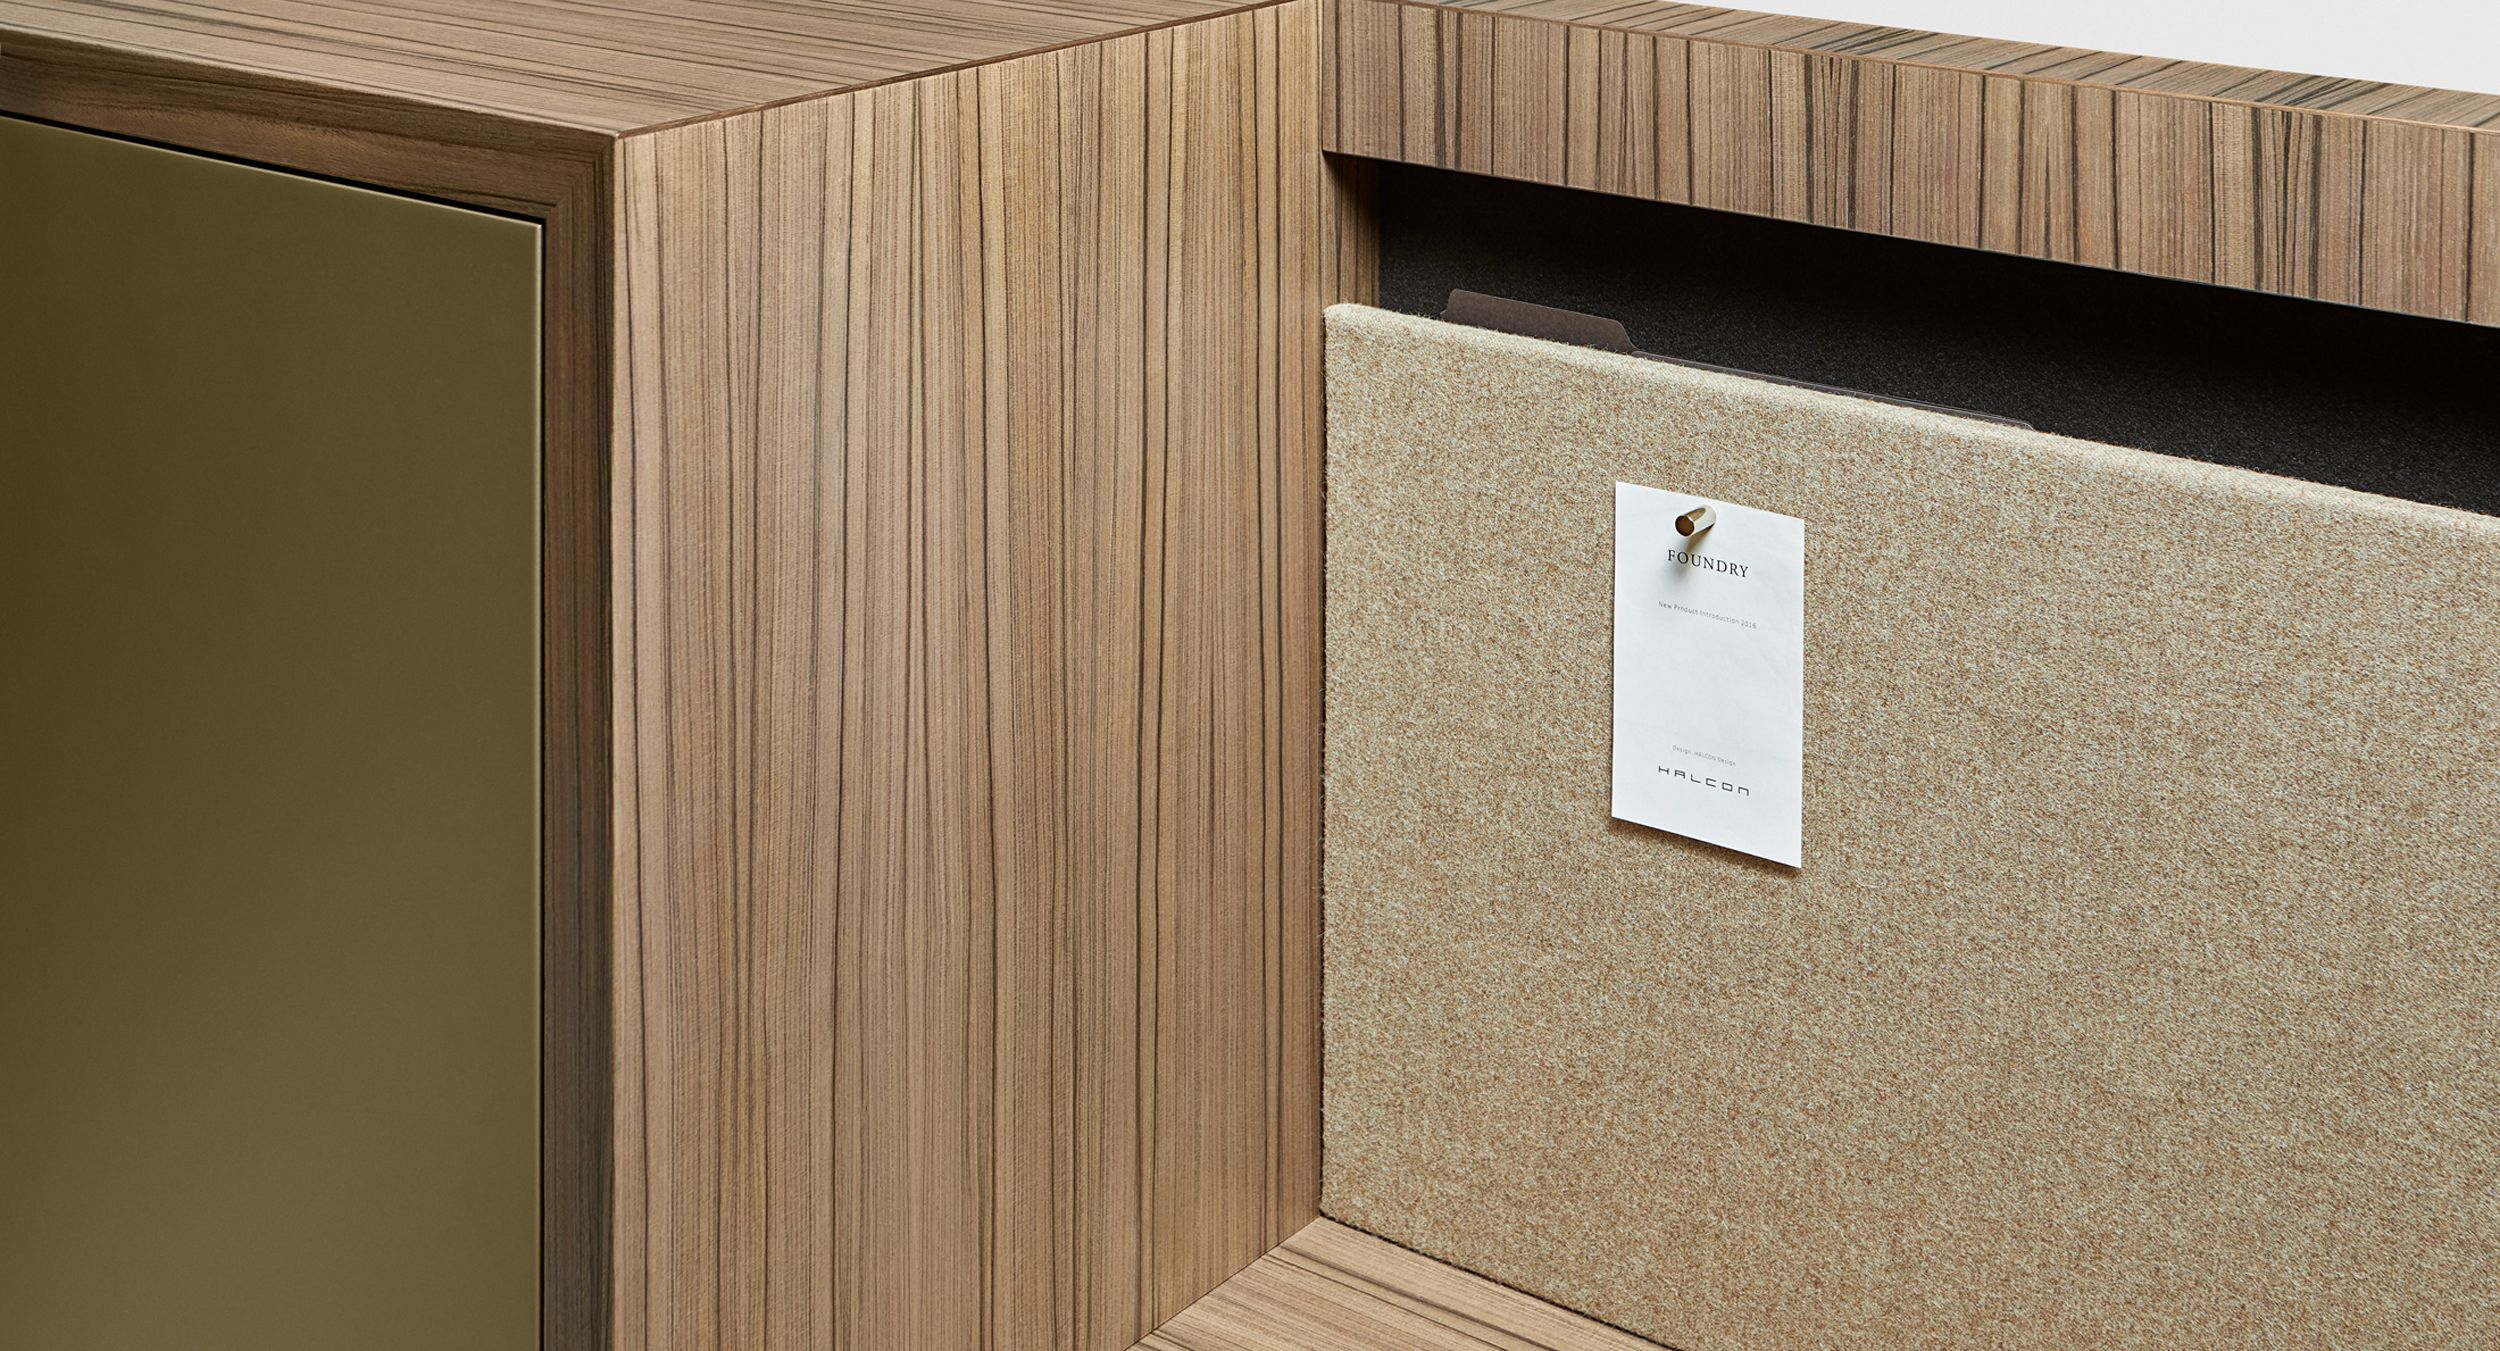 The innovative 'Foundry File' and magnetic 'tackable' fabric cleanly integrate into the FOUNDRY panel.